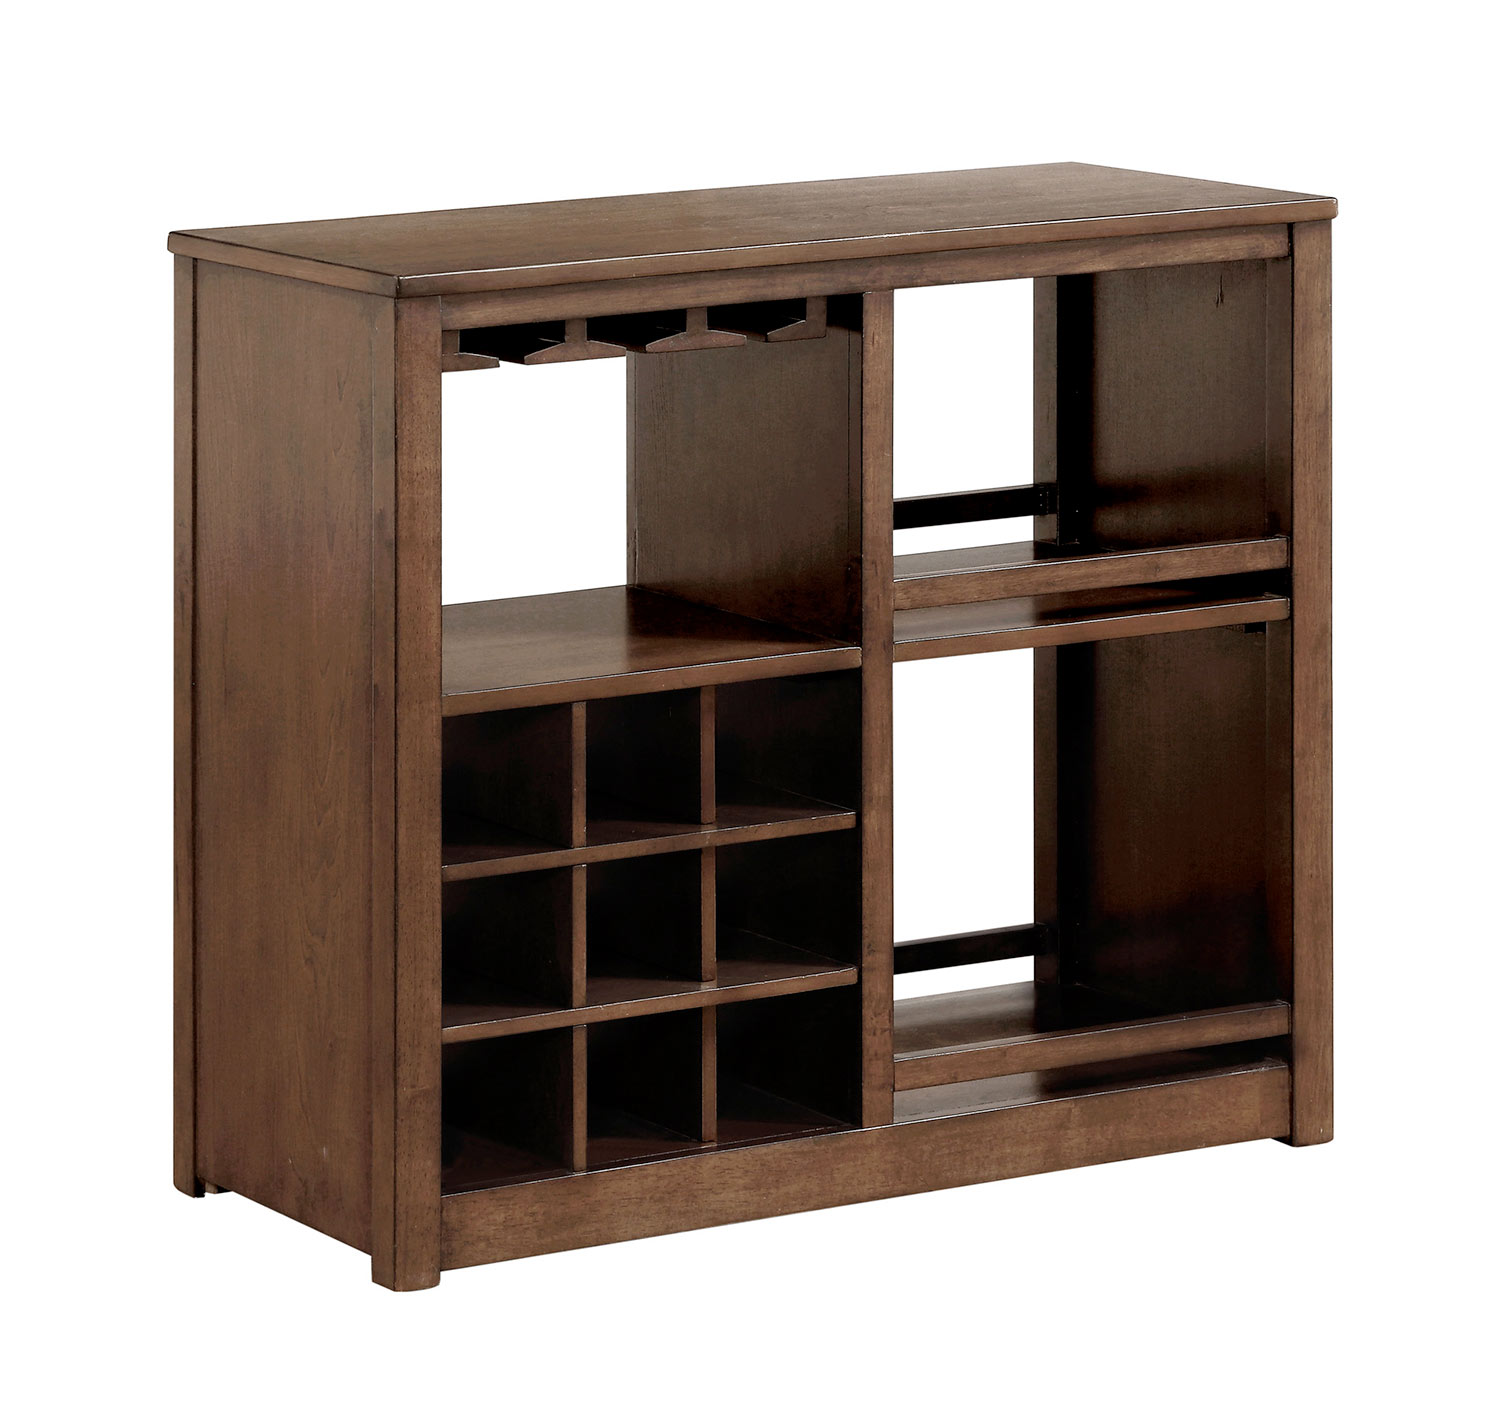 Homelegance Brindle Server with Casters - Brown